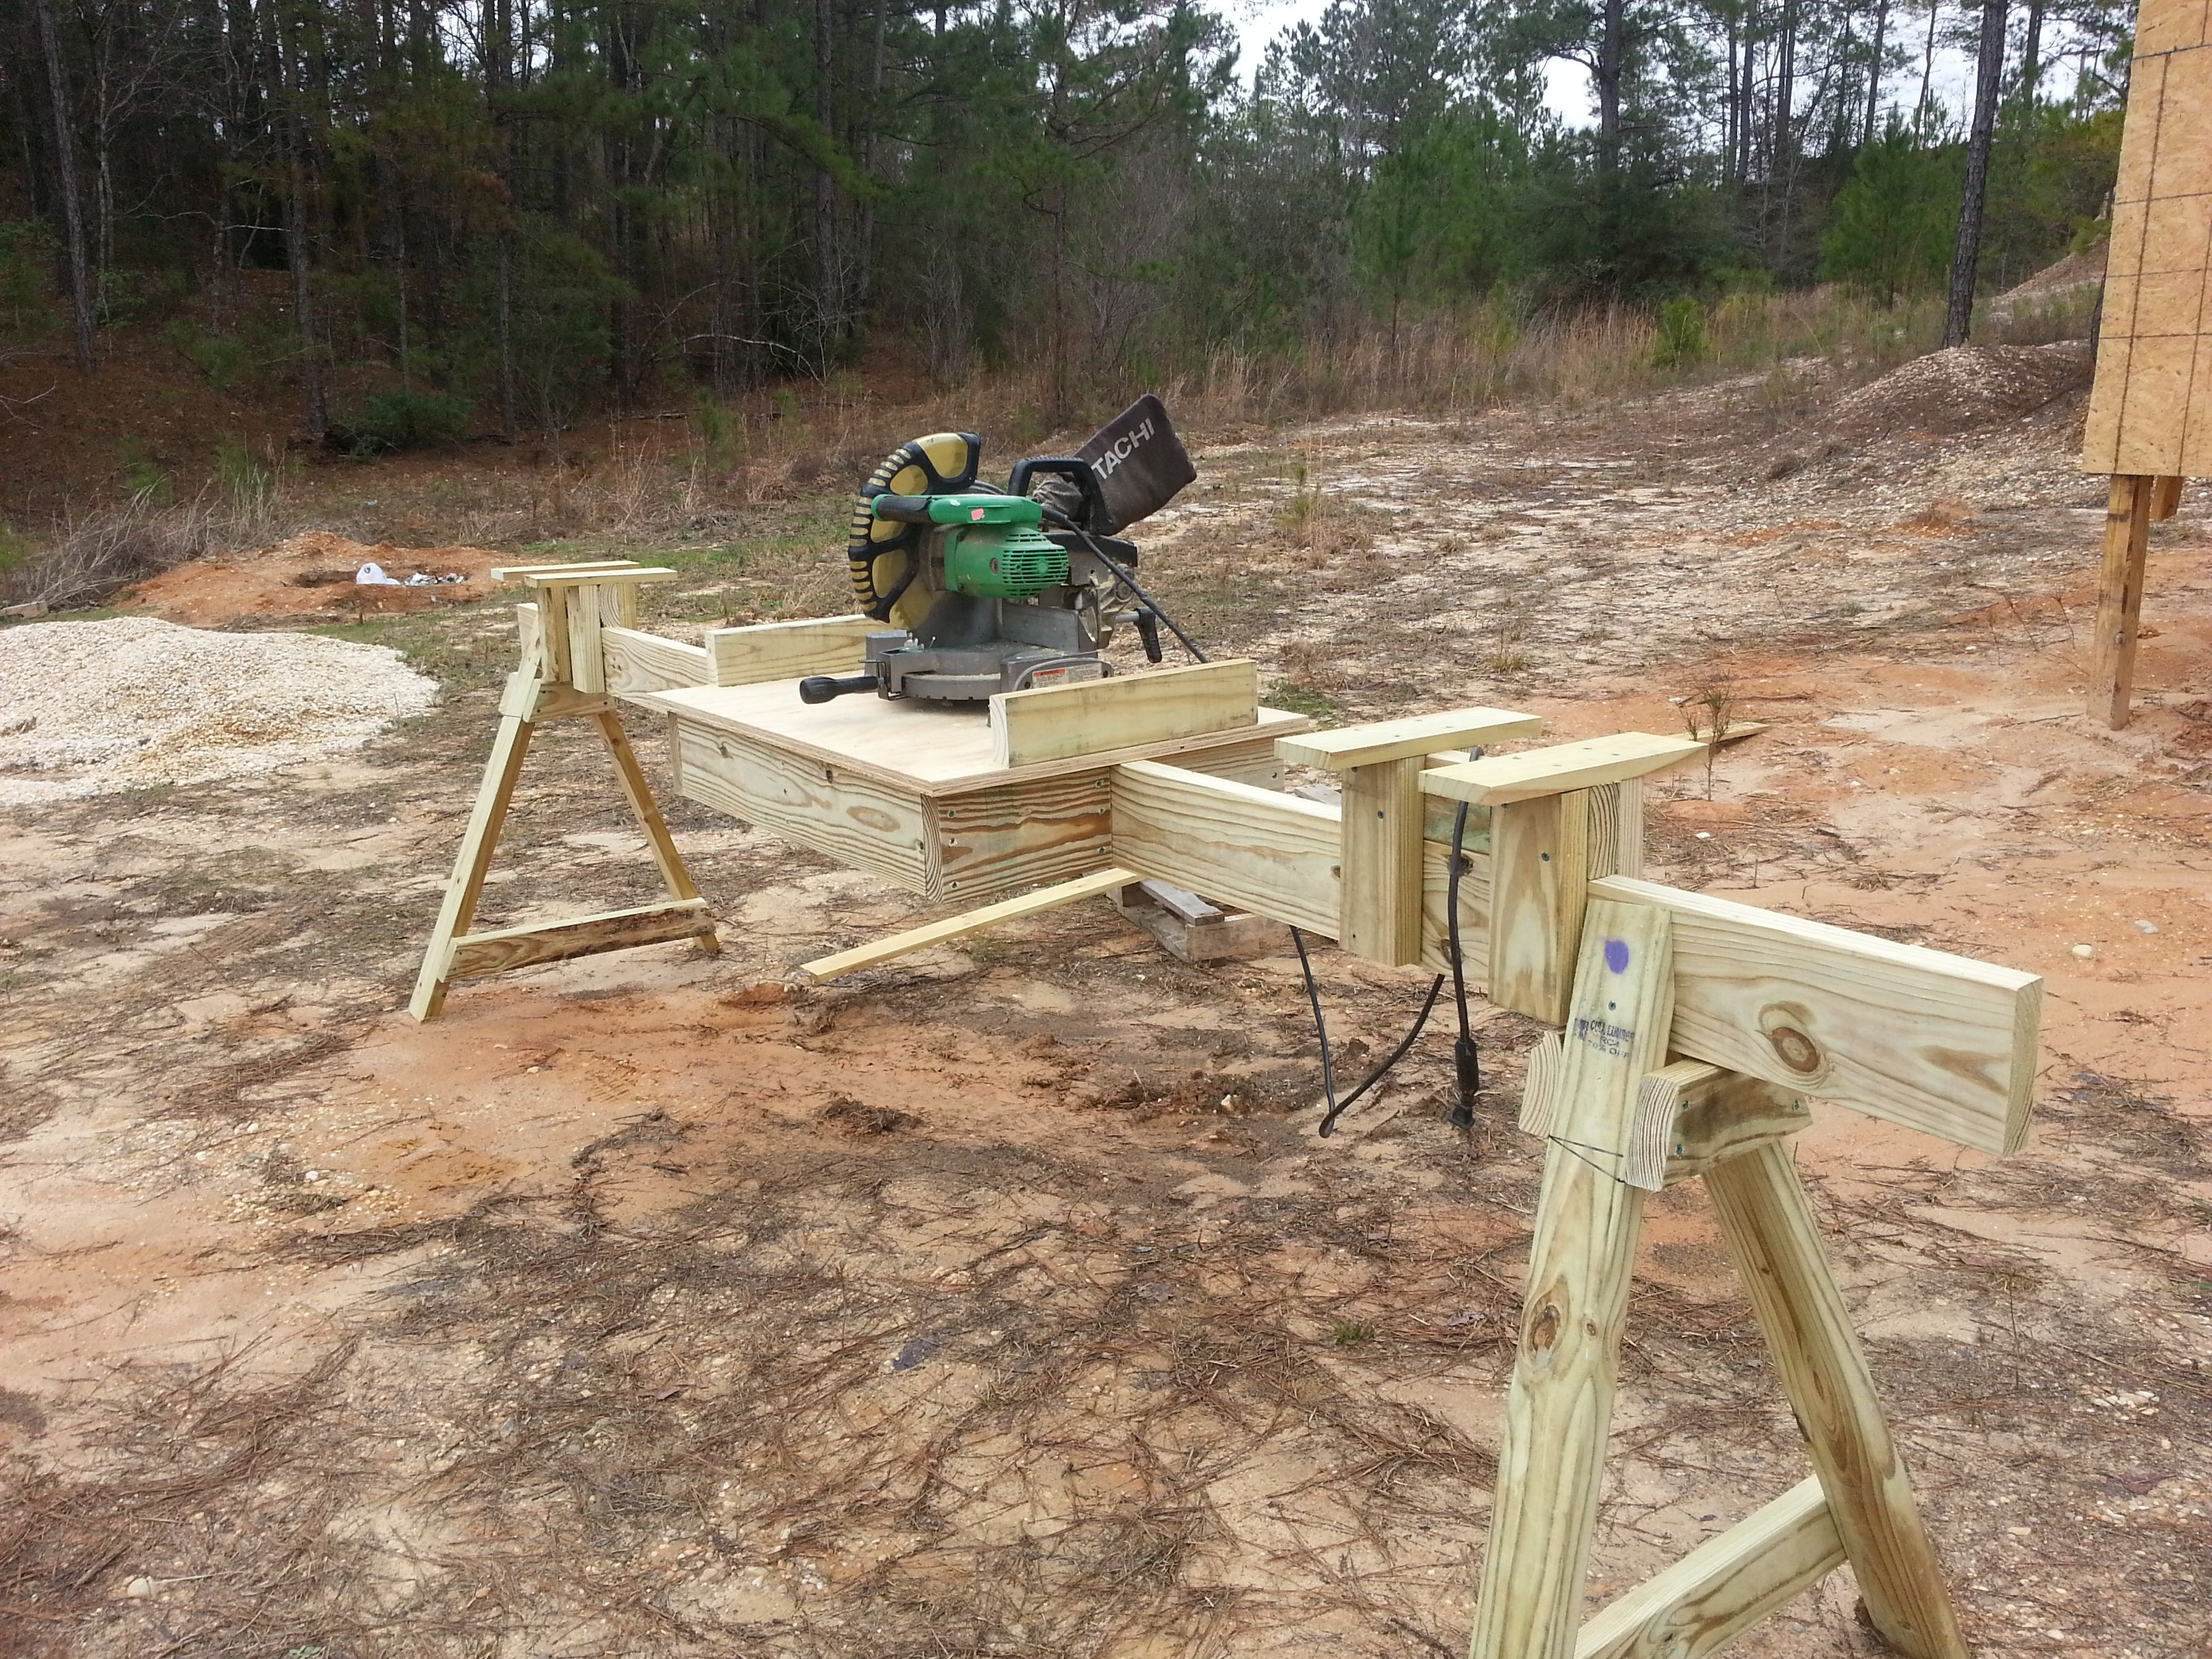 Diy tree stand plans - Portable Mitre Saw Stand I Built Based On These Plans Total Cost About 50